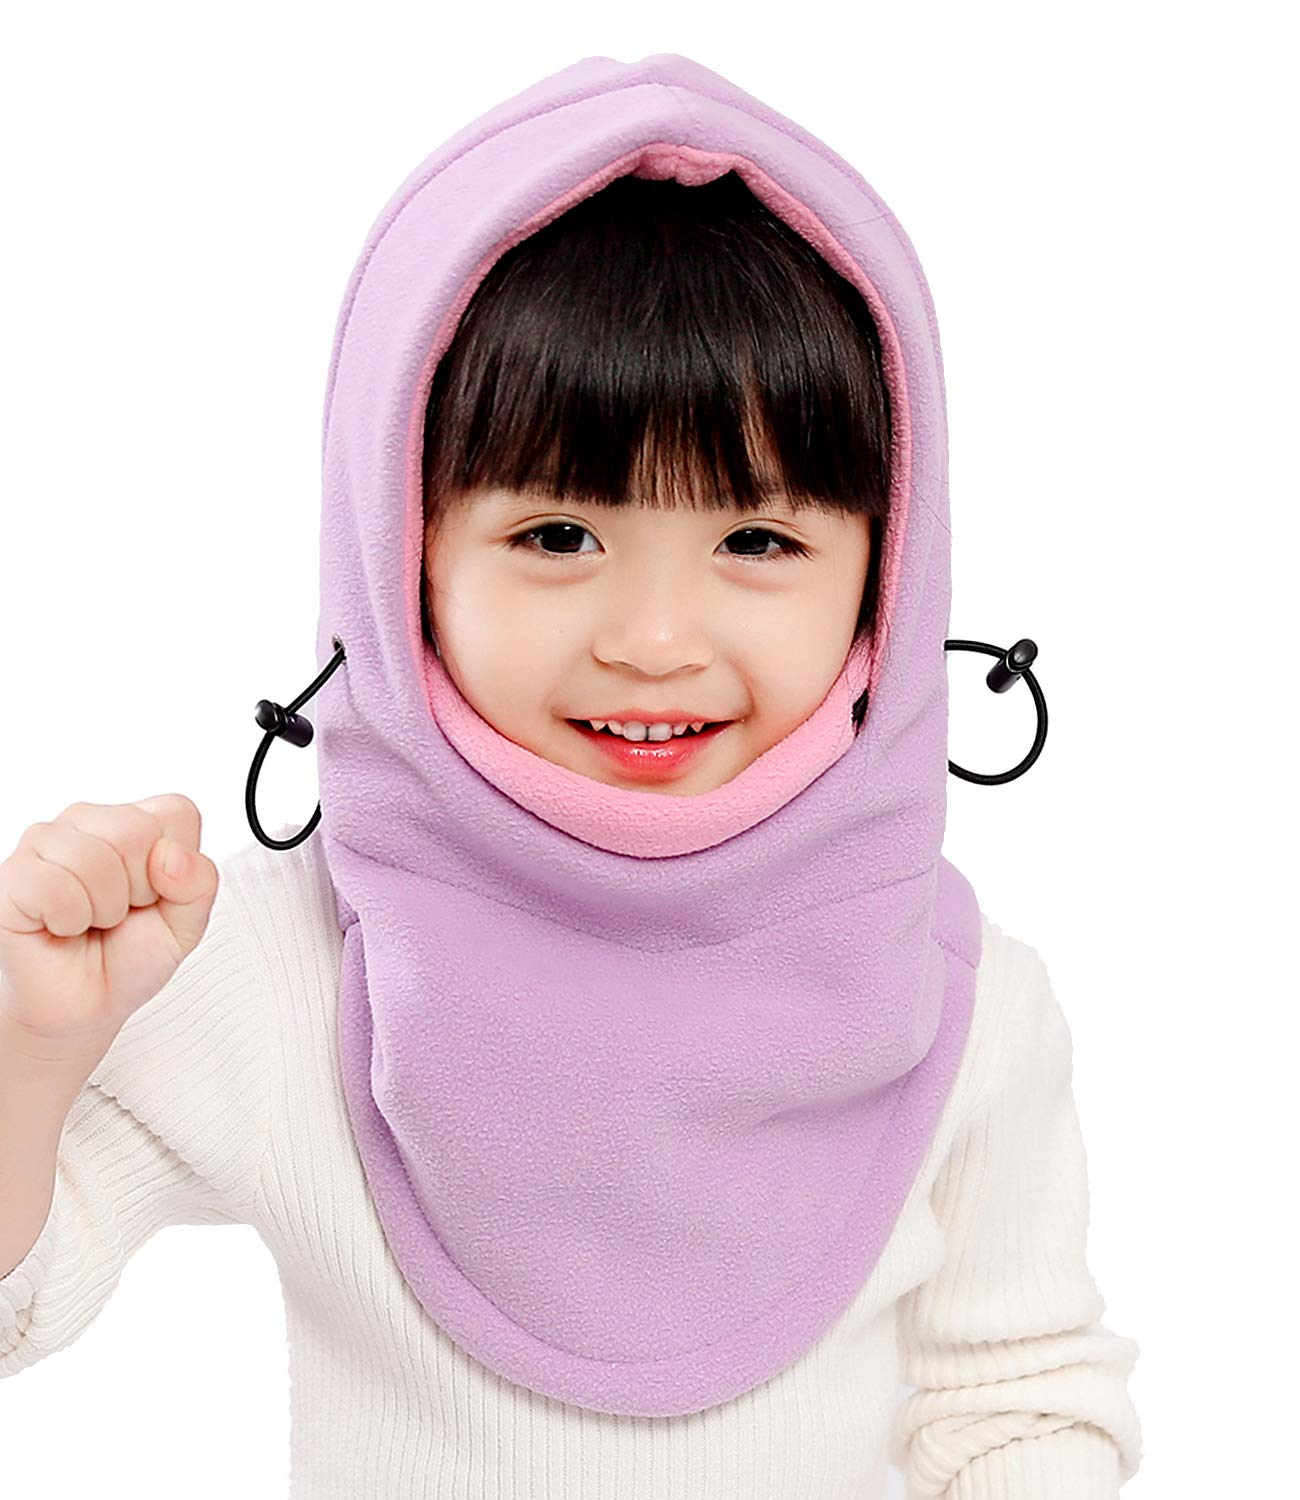 Kids Winter Windproof Cap,Children's Double Warm Balaclava Face Mask for Cold Weather,Neck Warmer,Adjustable Full Face Cover